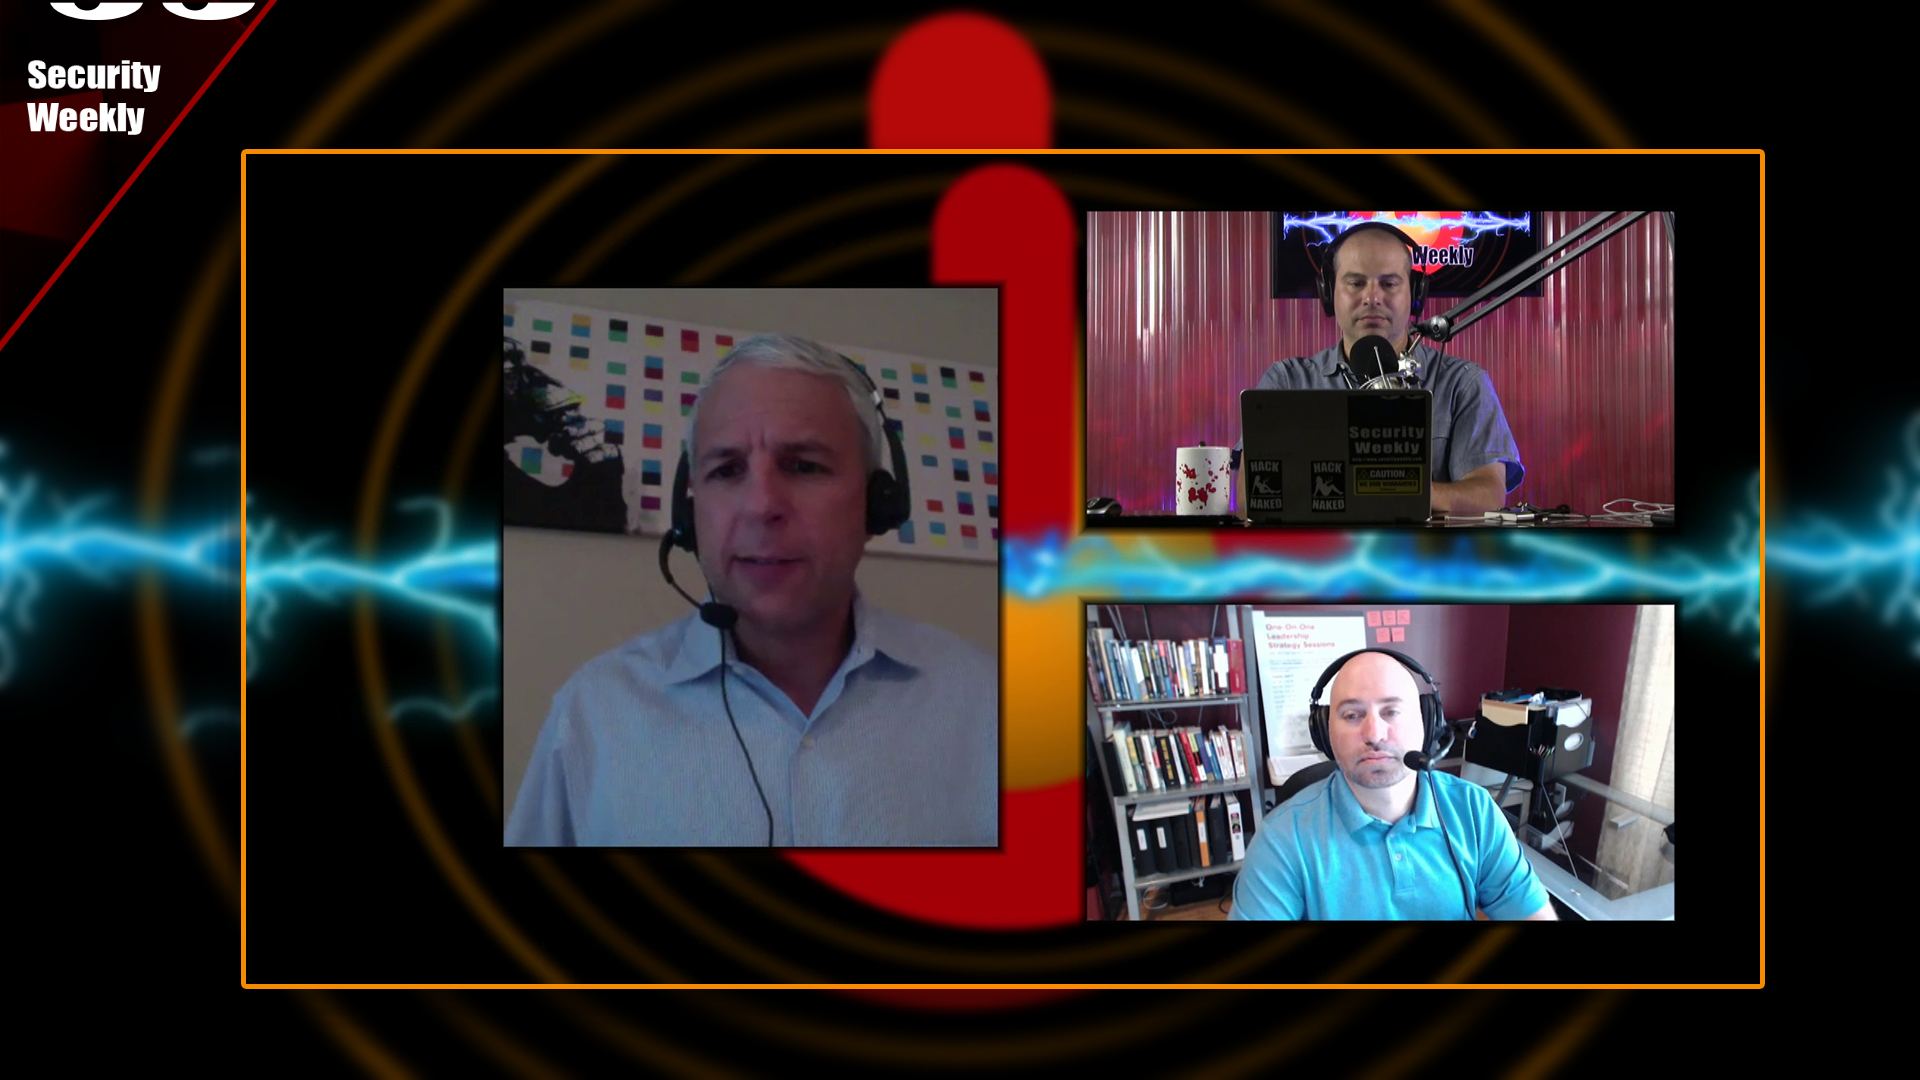 Artwork for Ronnie Feldman, Learnings & Entertainments - Startup Security Weekly #47